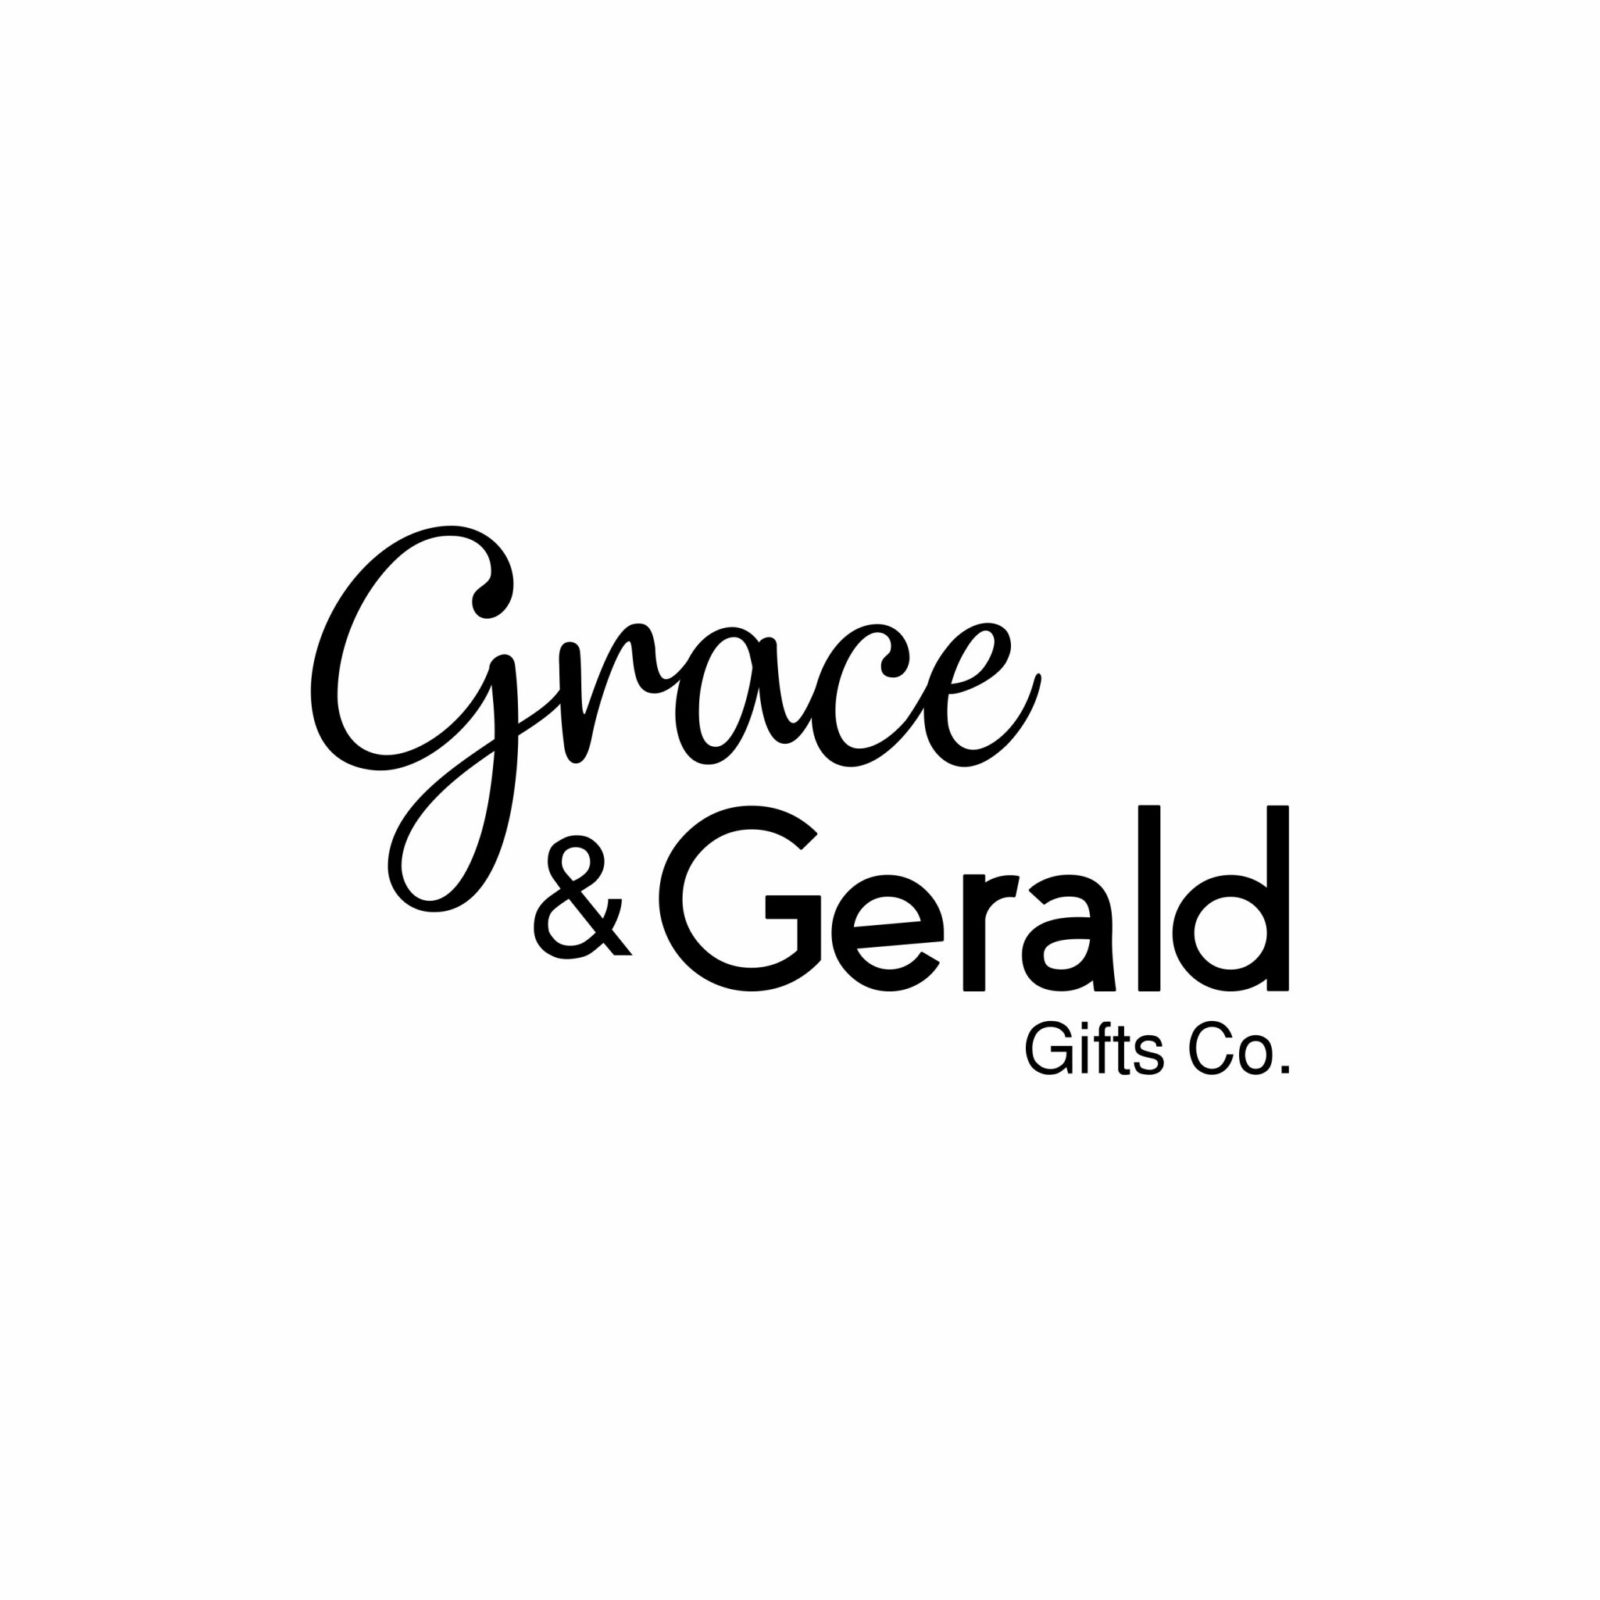 Grace & Gerald Gifts Co.